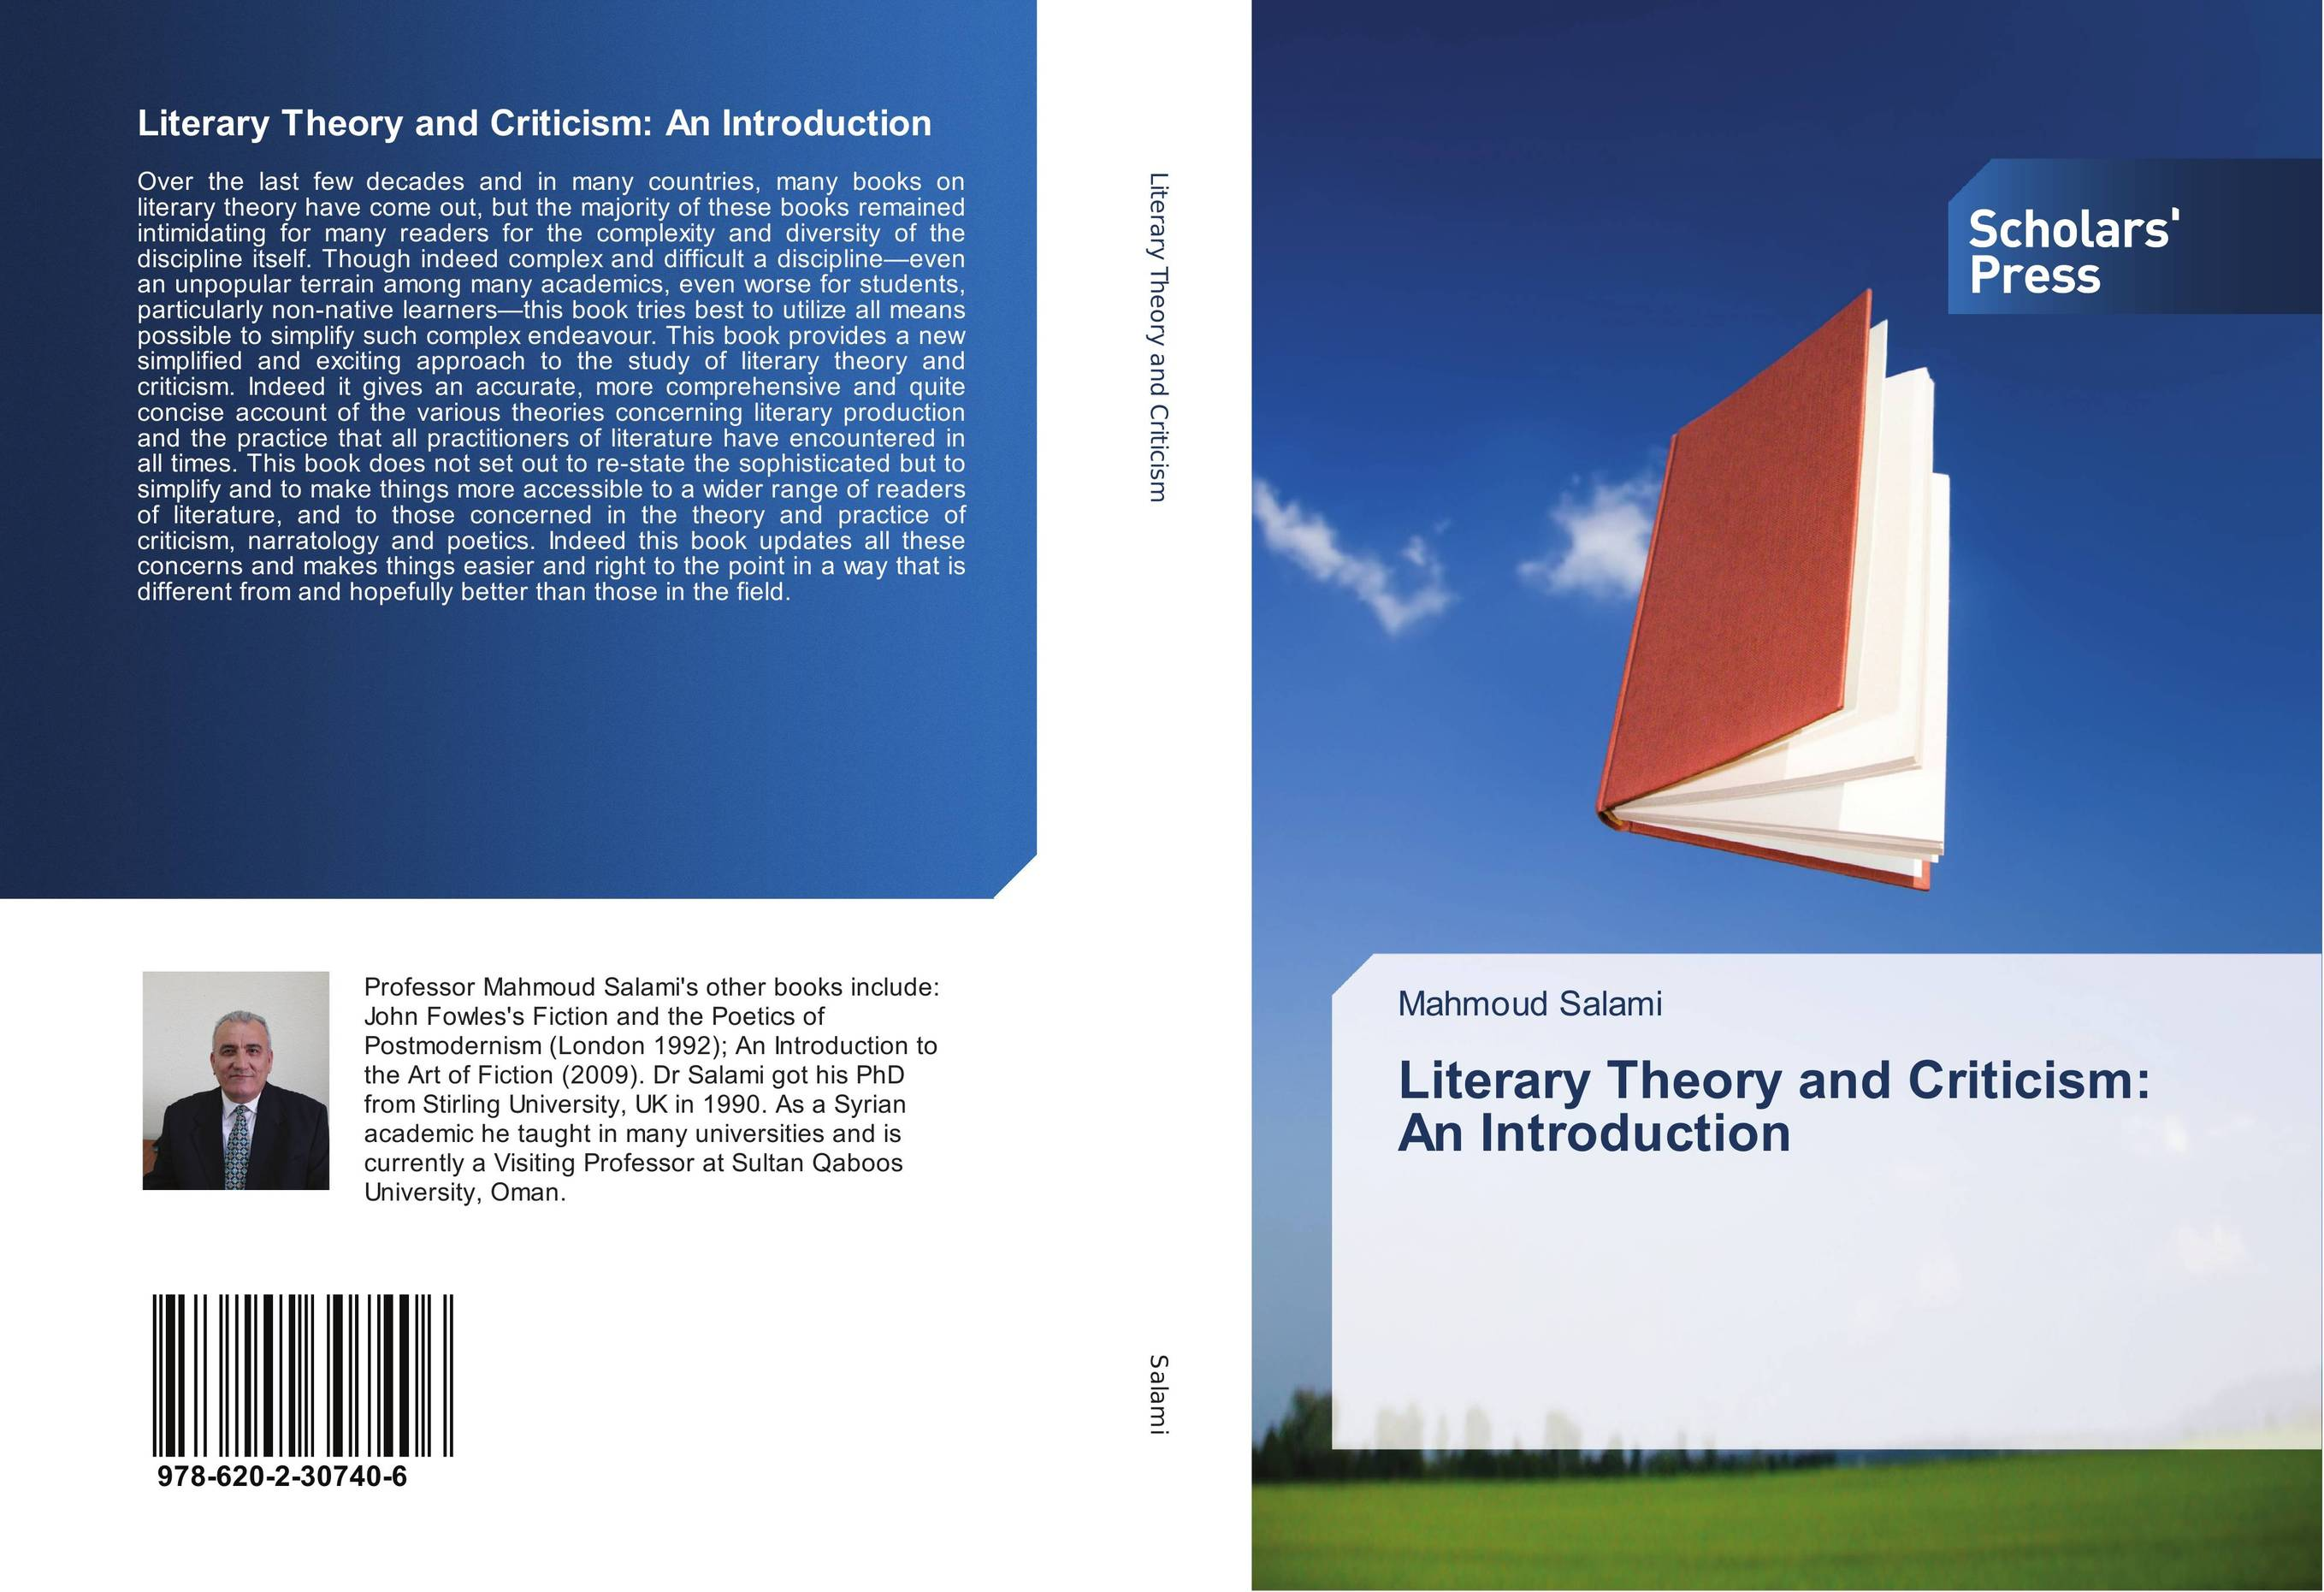 literary theory and criticism investigating literature Literary theory and criticism are steadily evolving disciplines devoted to the interpretation of literary works they offer unique ways to analyze texts through these approaches range from marxist to psychoanalytic to feminist and beyond queer theory, a recent addition to the field, looks at literature.